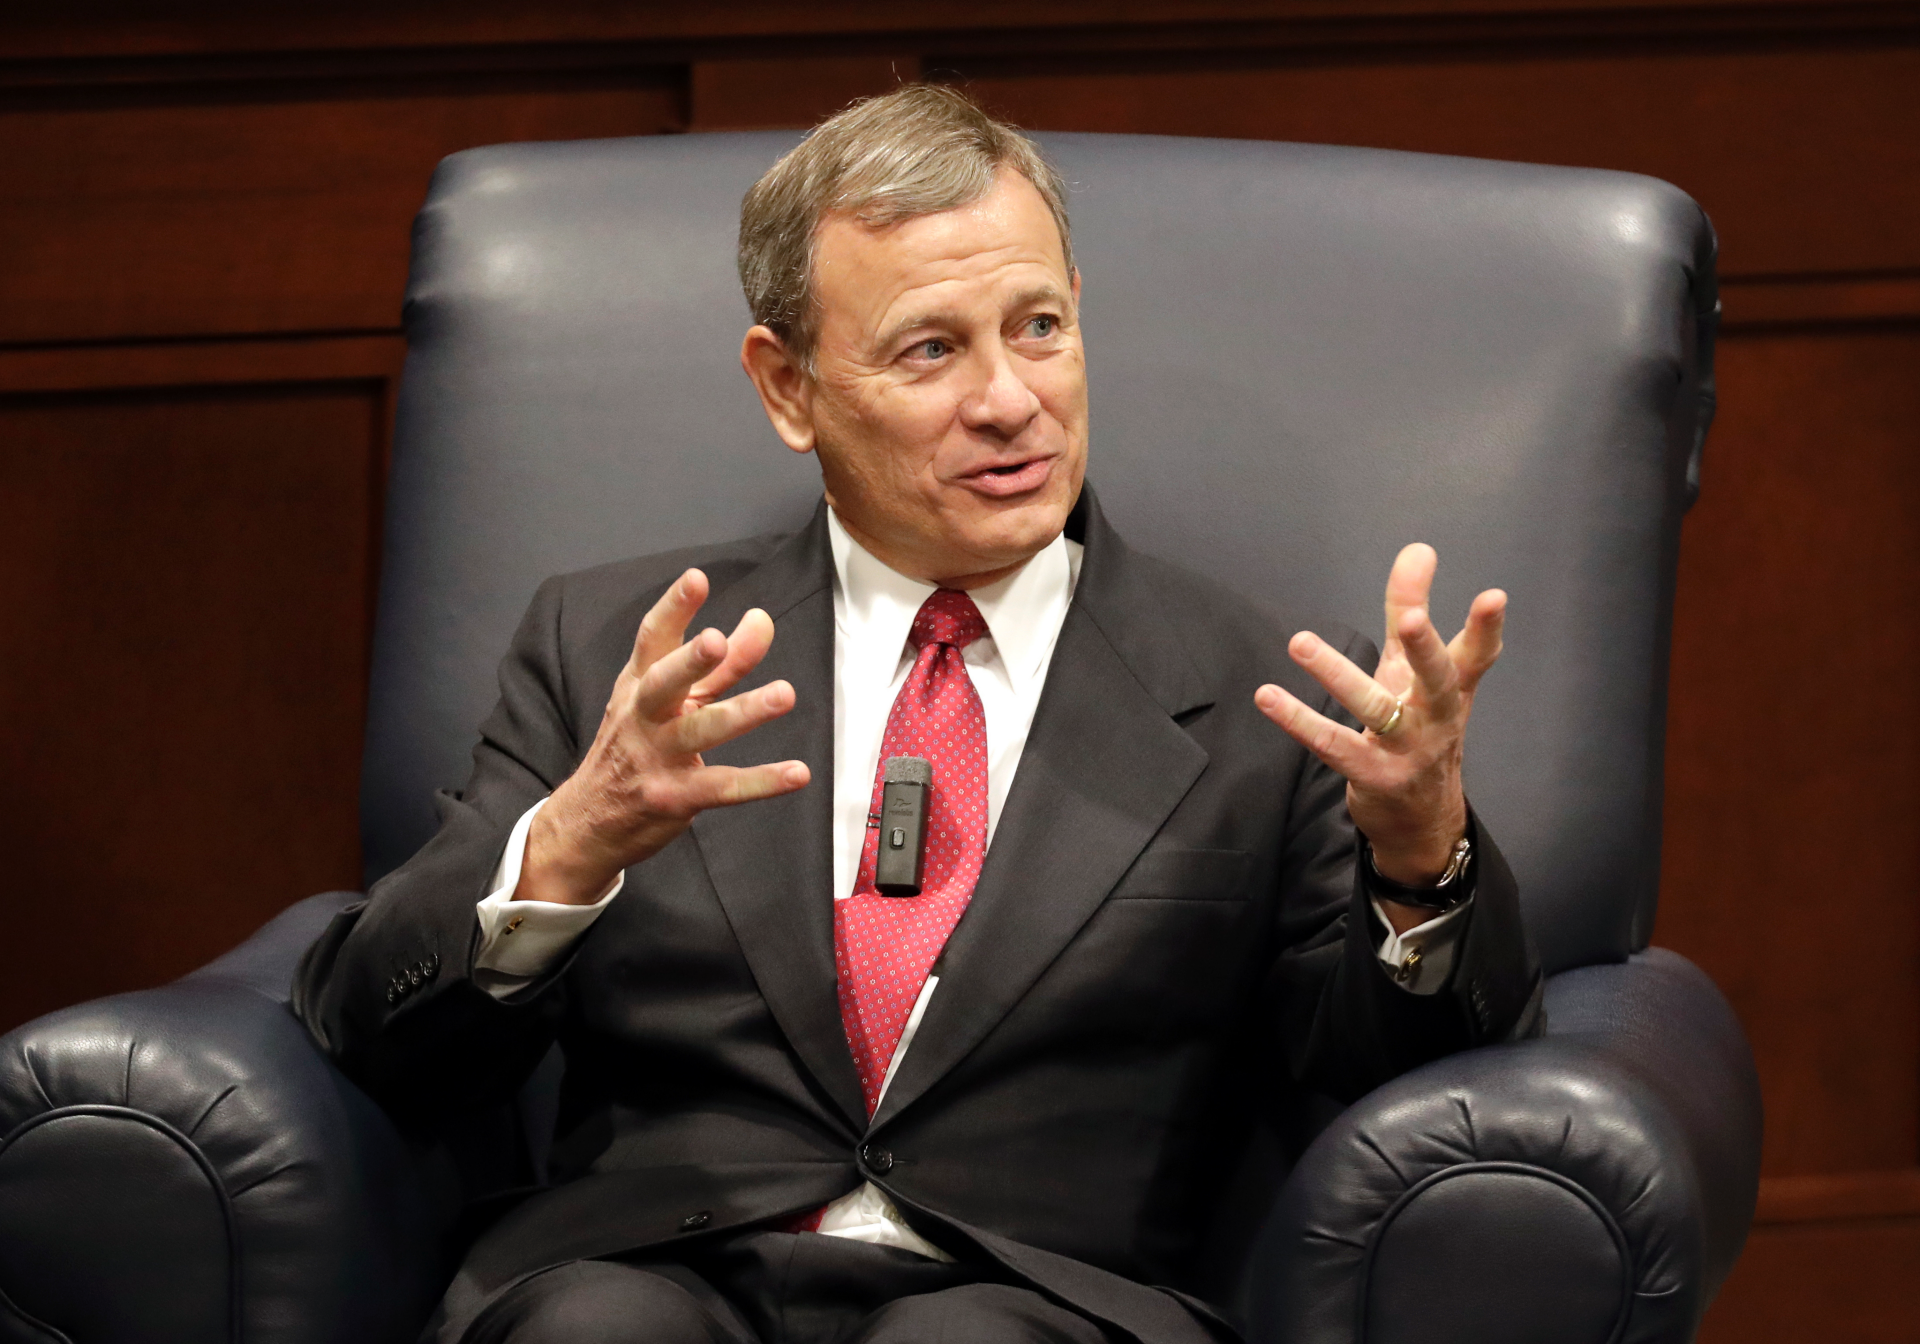 Chief Justice Roberts pulls double duty with court arguments, impeachment trial